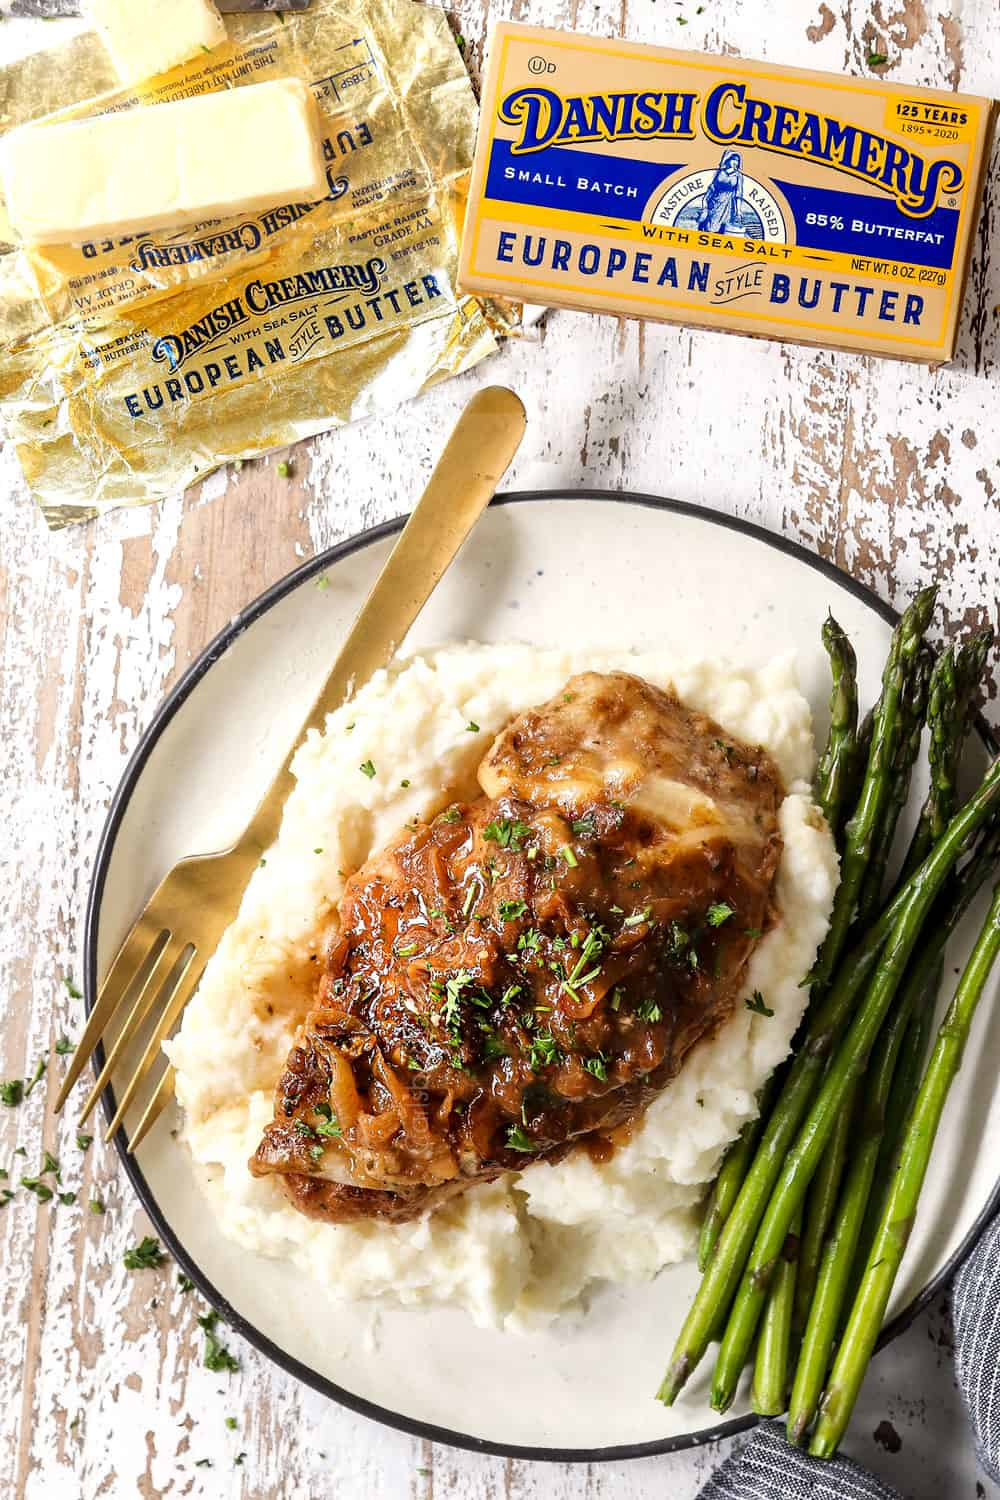 top view of a piece of French onion chicken on a plate with mashed potatoes with asparagus